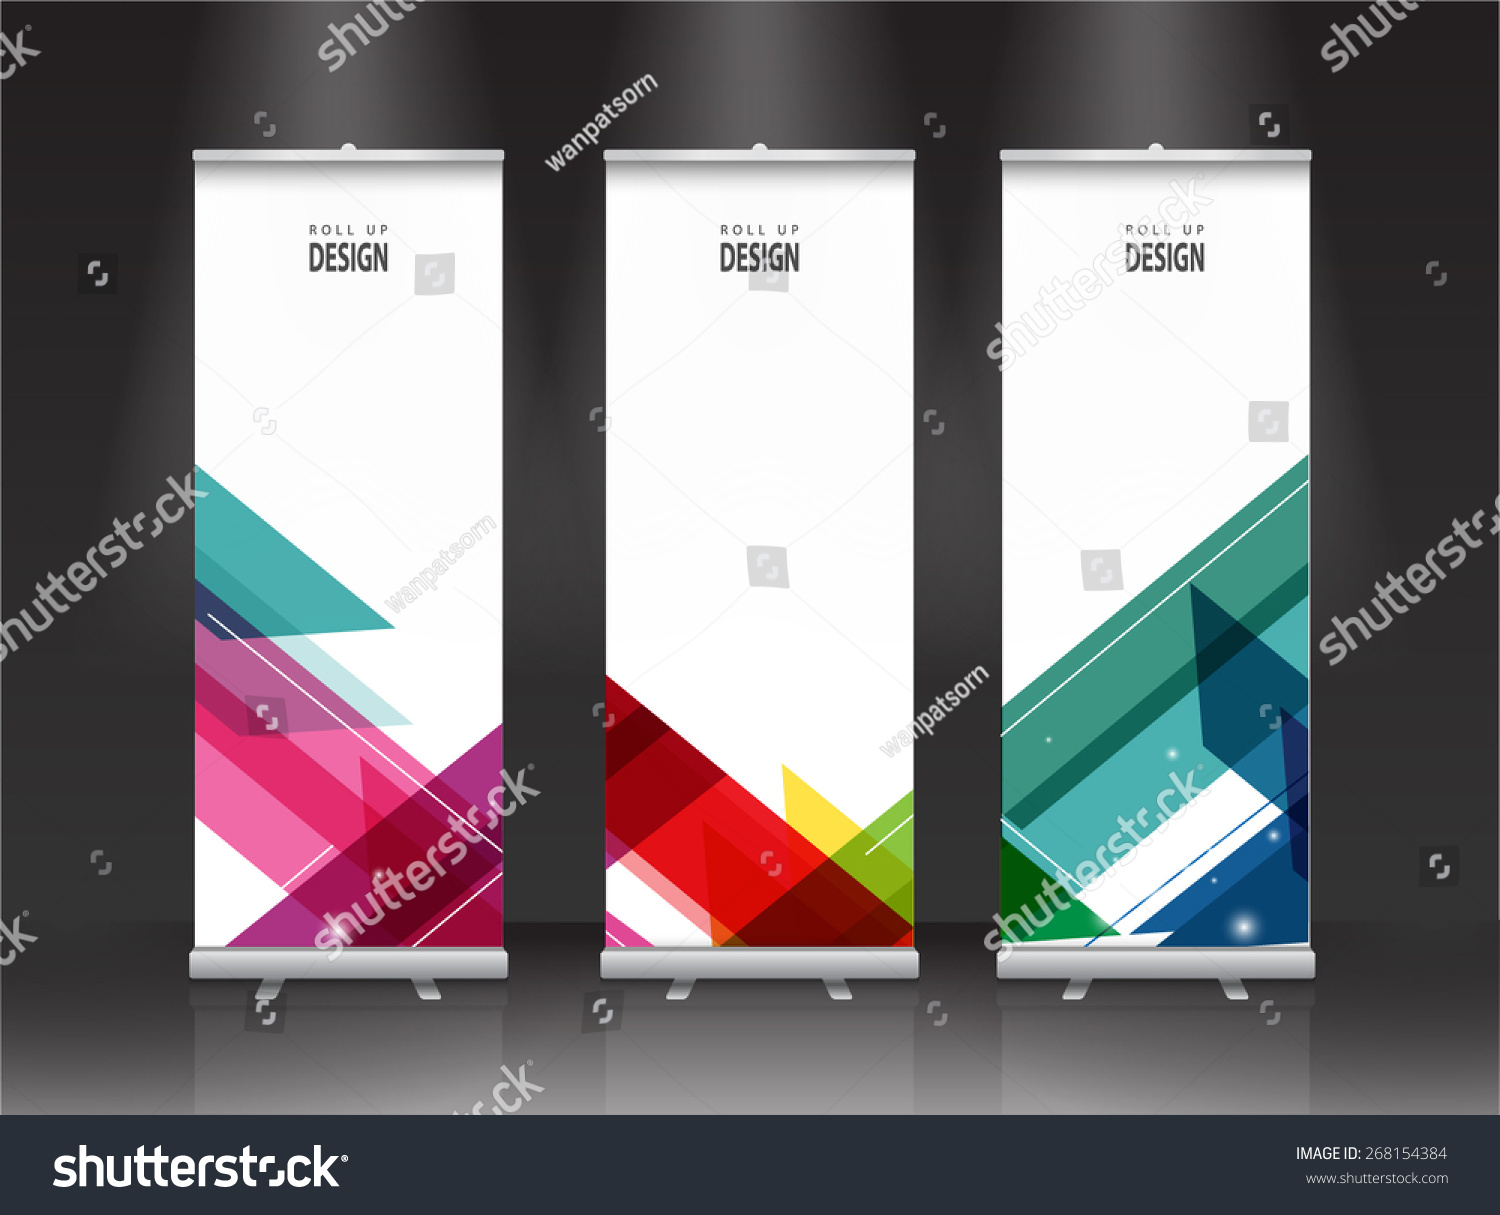 Exhibition Stand Design Vector : Roll banner stand design vector stock